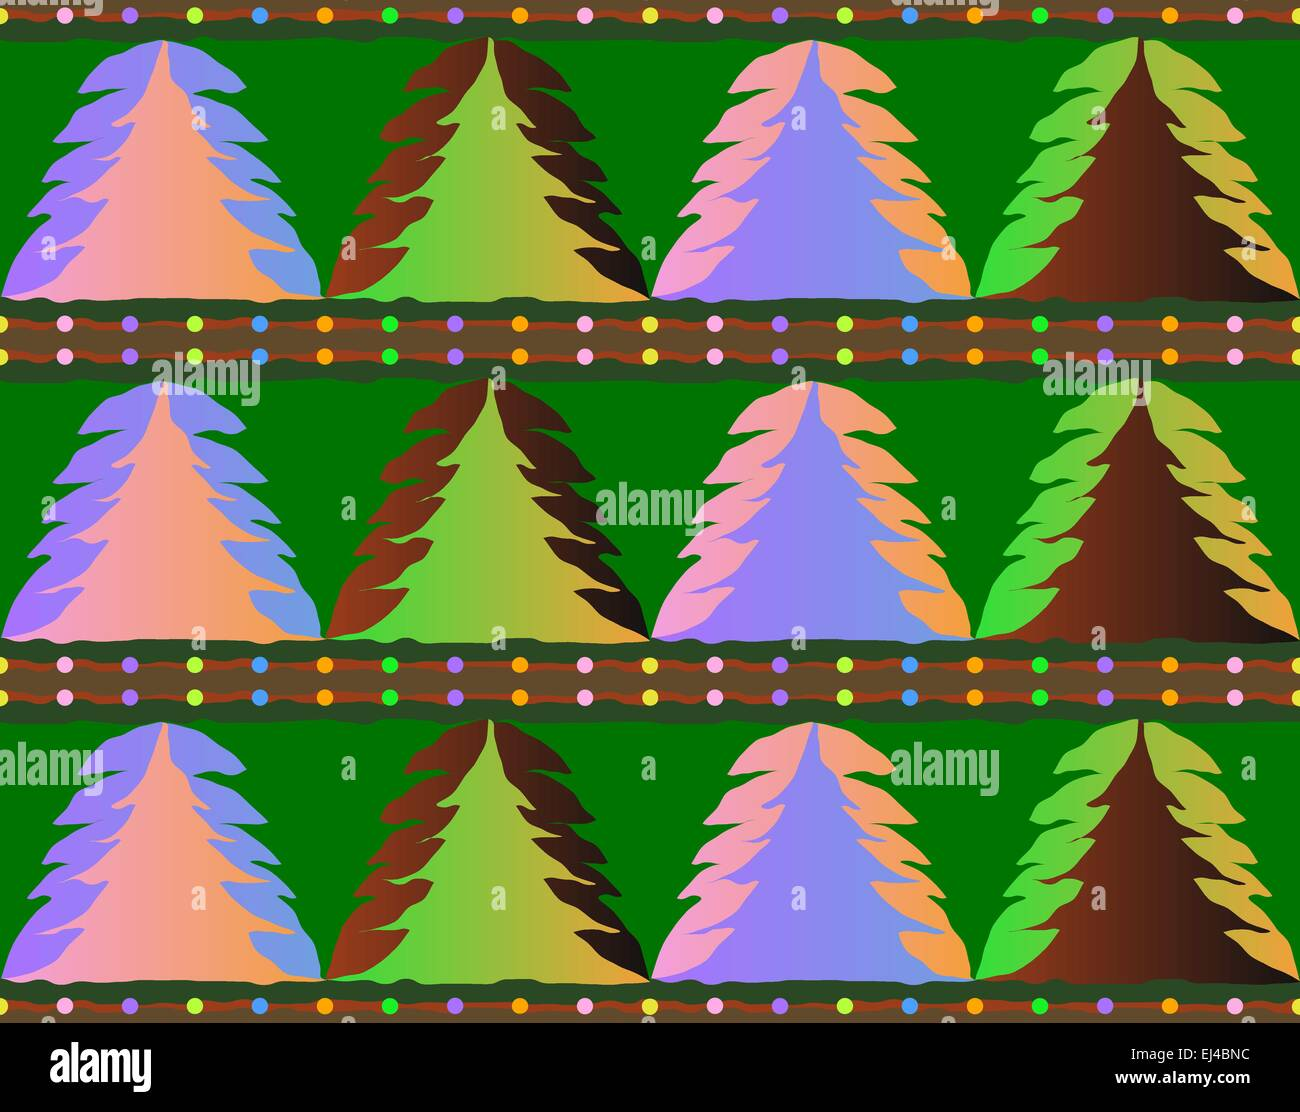 Seamless Christmas Tree Pattern Texture With Colorful Balls For Background Wallpaper Wrapping Paper Or Fabric